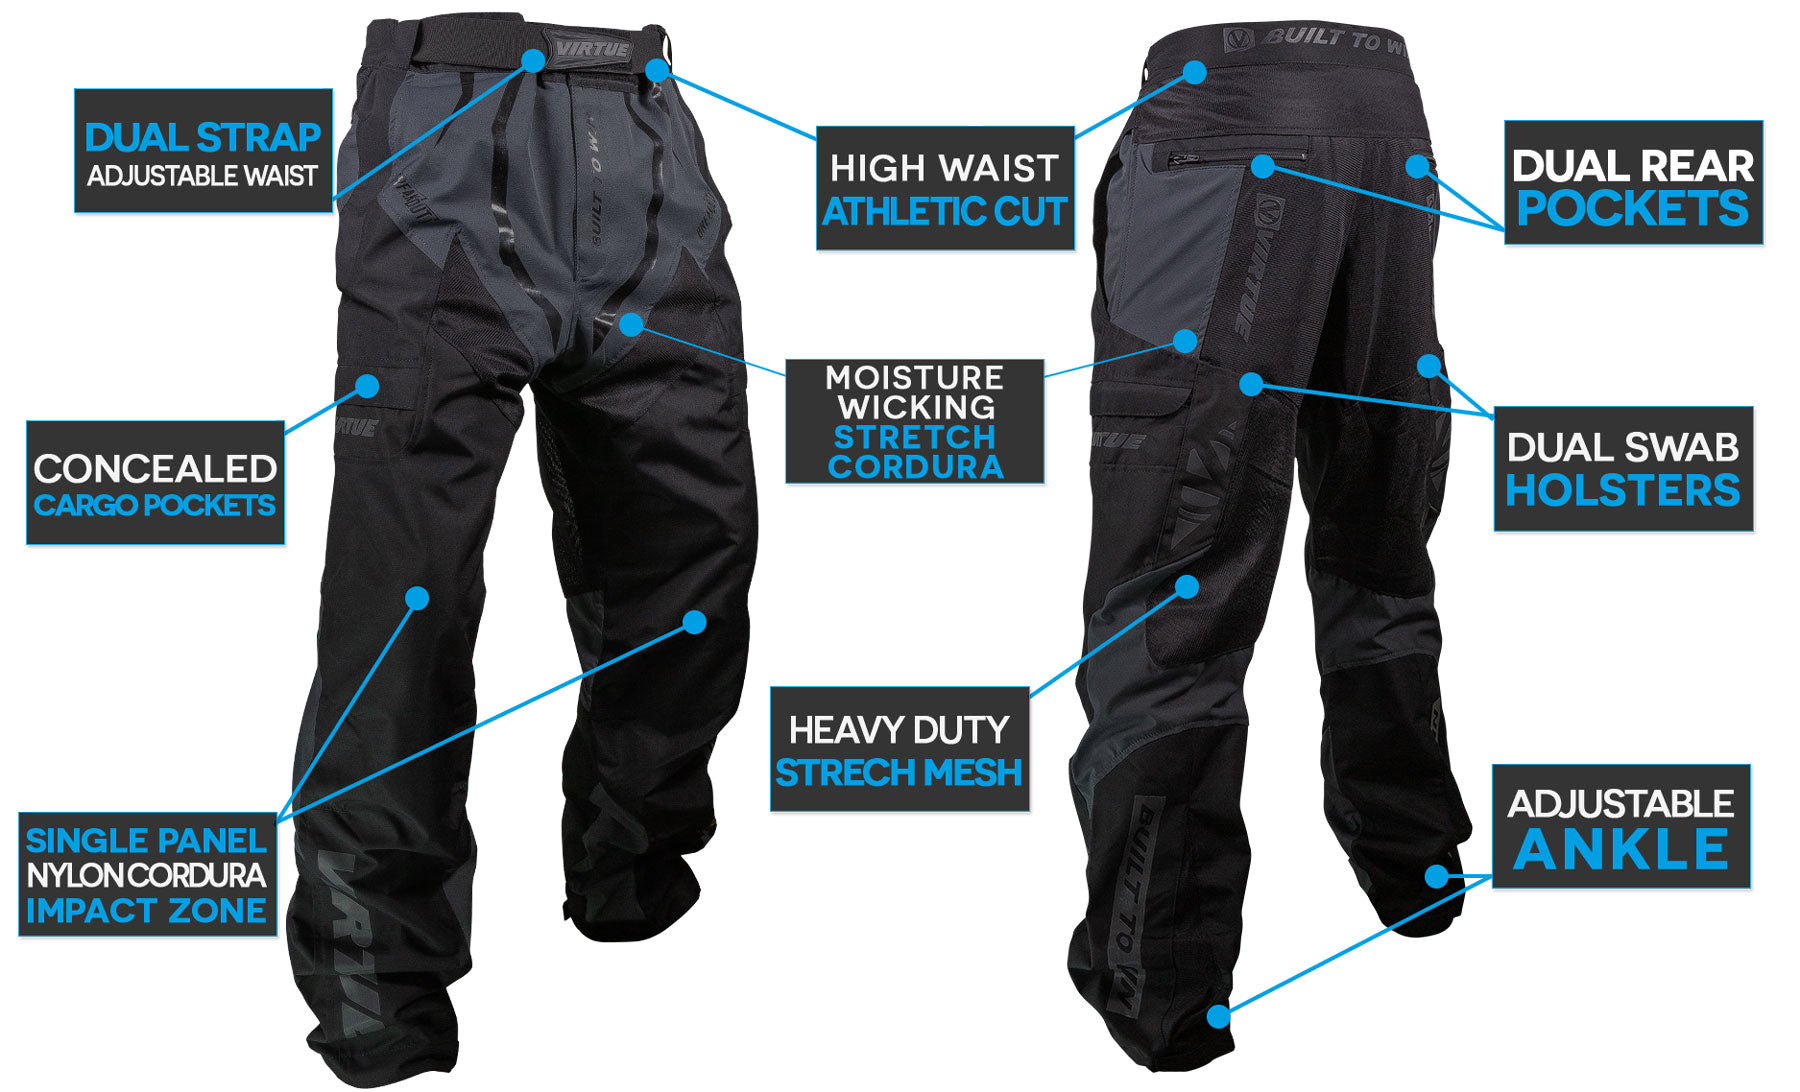 Brakout Pants - Feature Call-Out